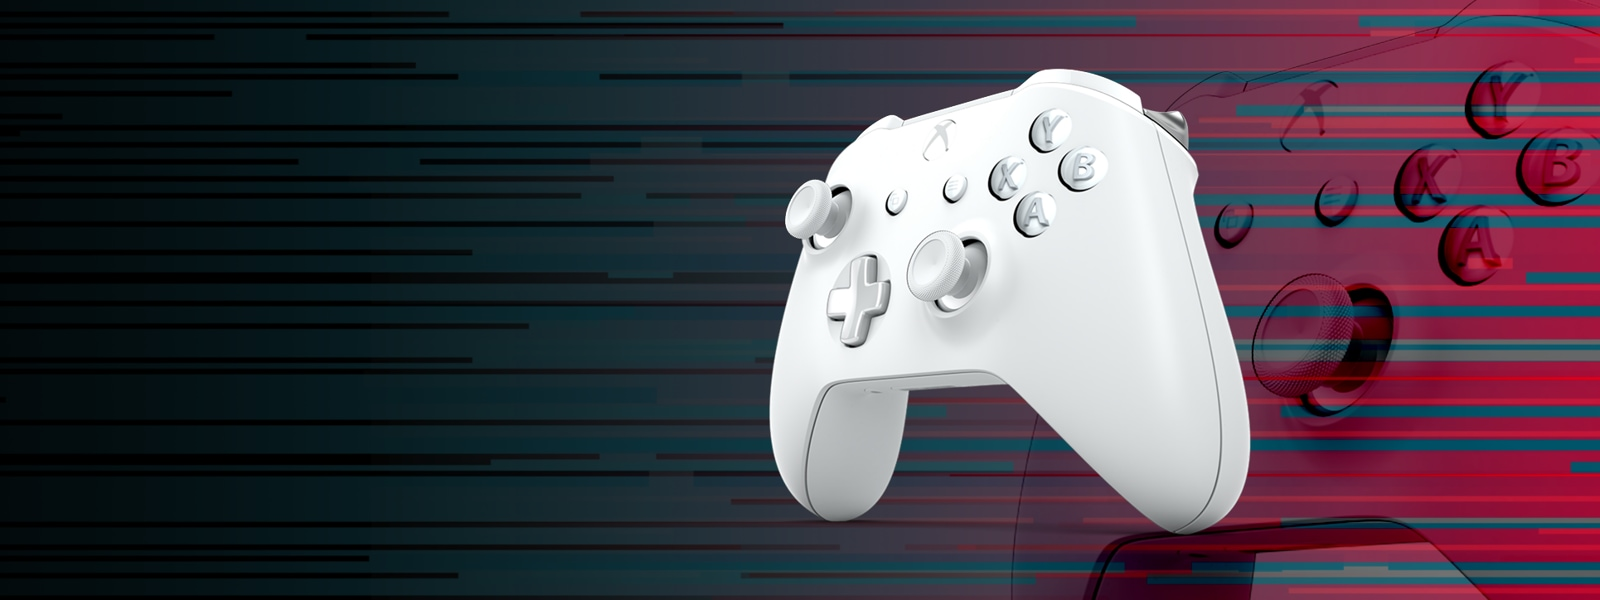 White controller on colored background